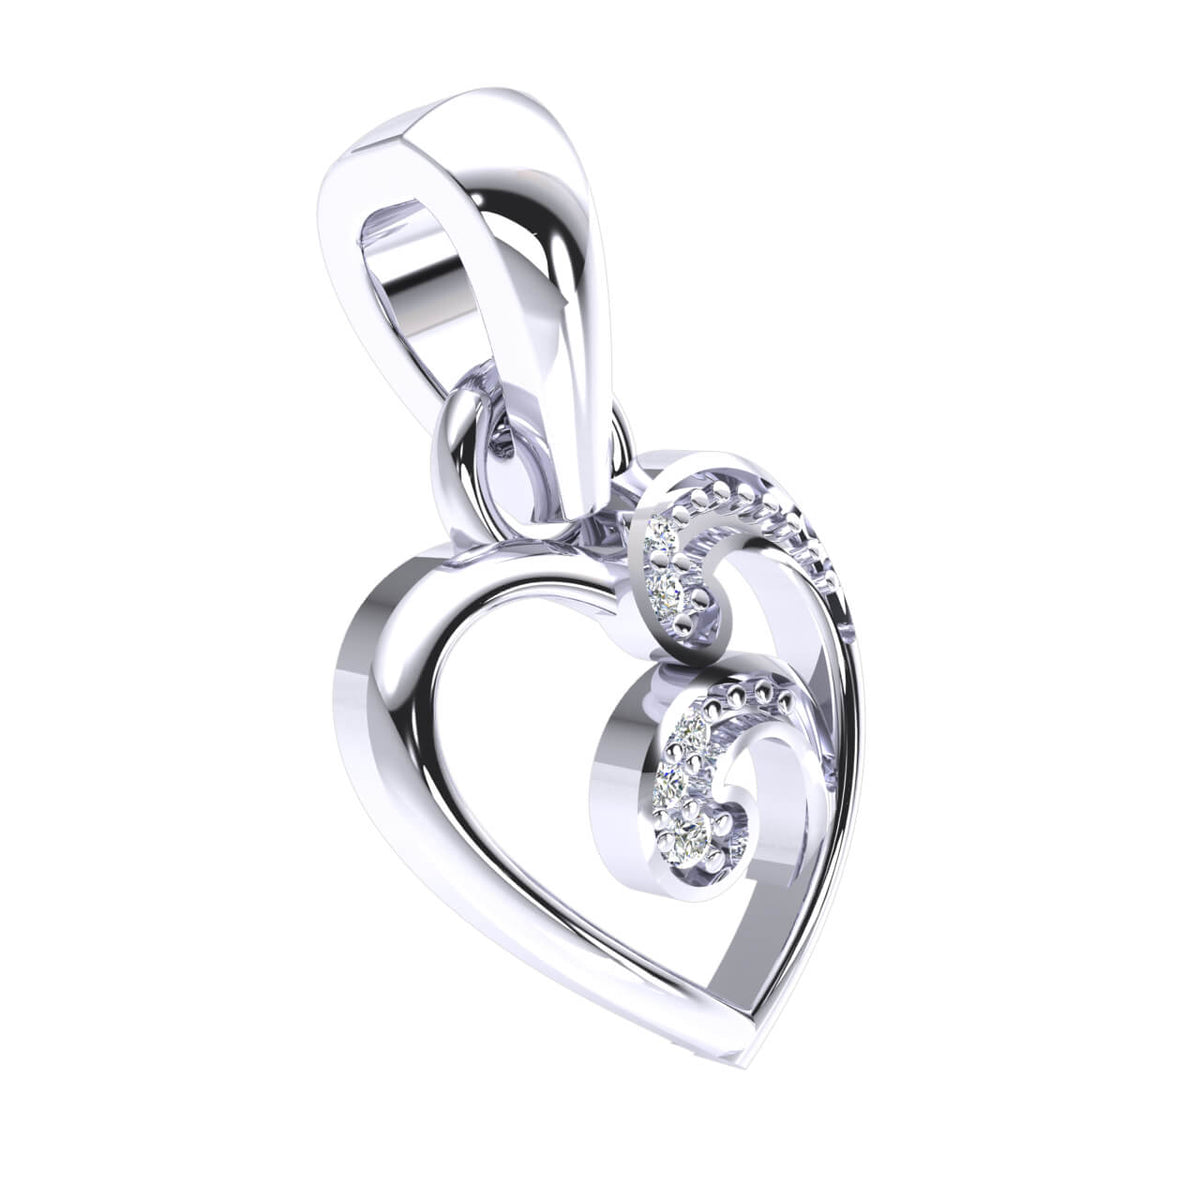 0.03 Ct 5-Stone Drop Round GH SI2 Diamond Women's Heart Pendant 14k Gold